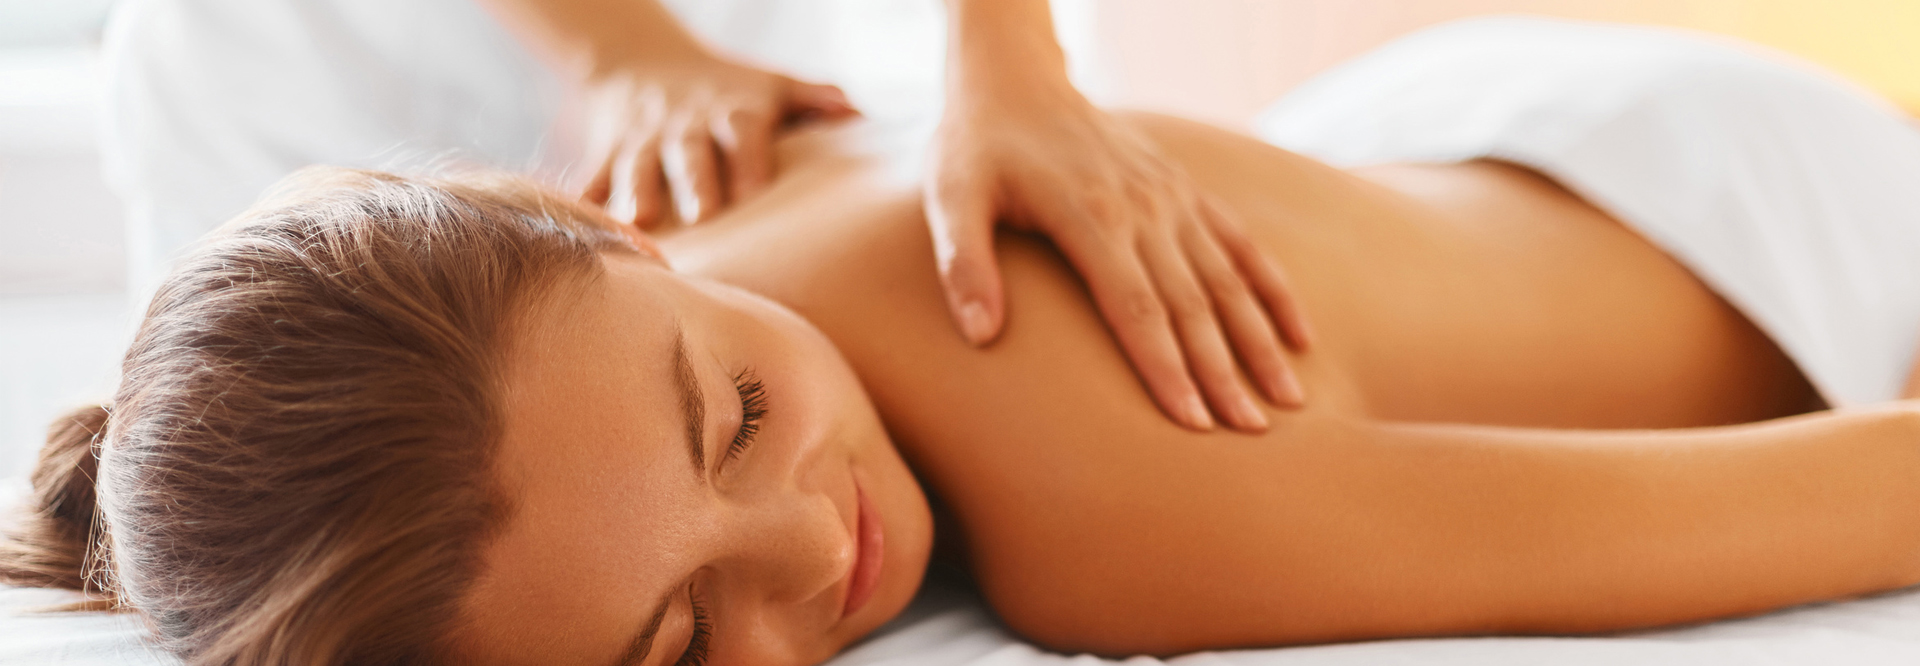 Flachauerhof Wellness Massage - Wellness